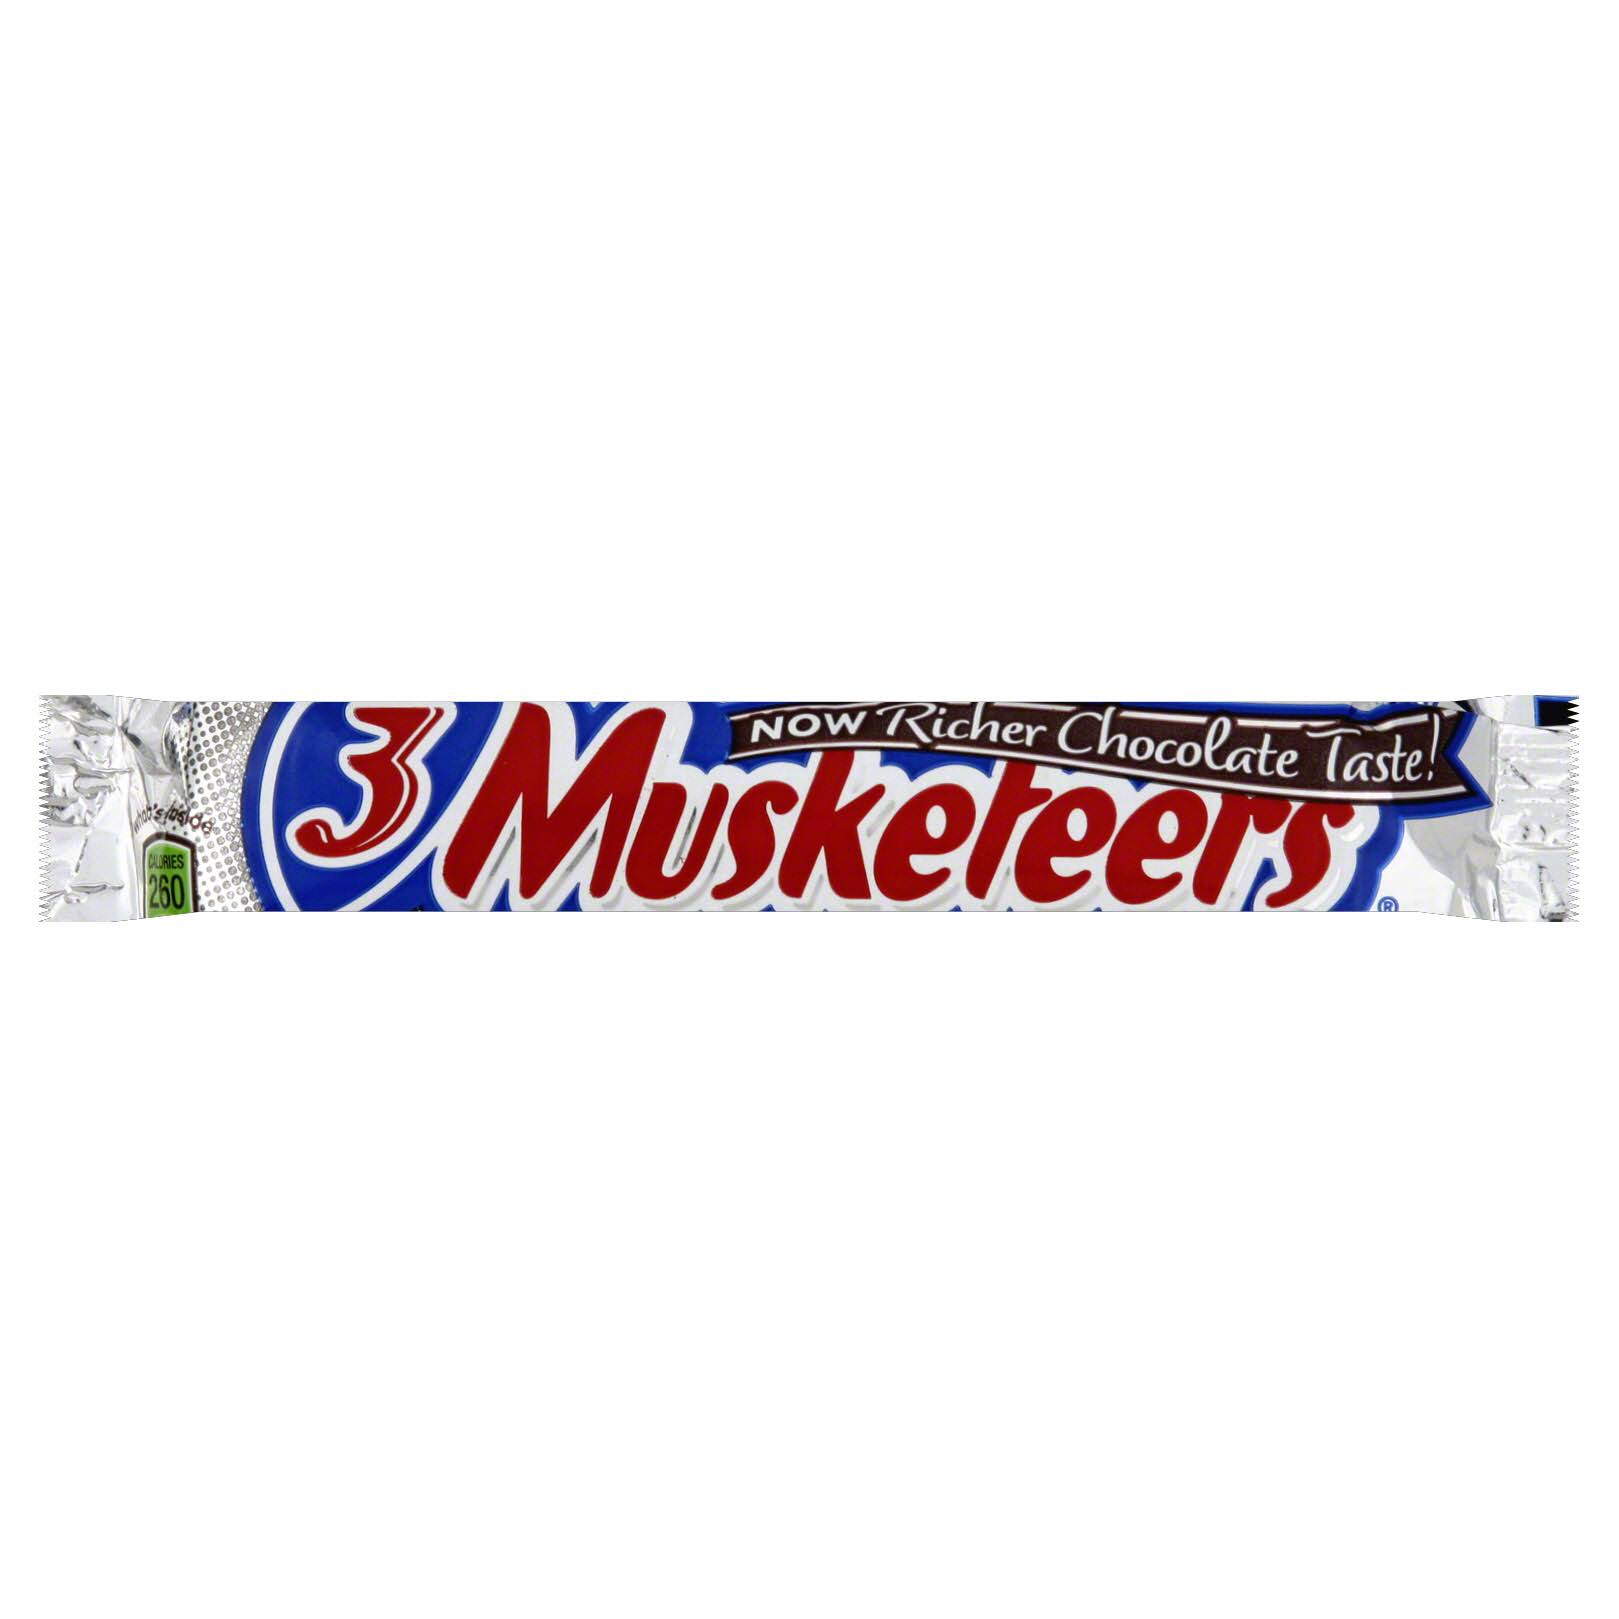 3 Musketeers Chocolate Bar - 2.13oz